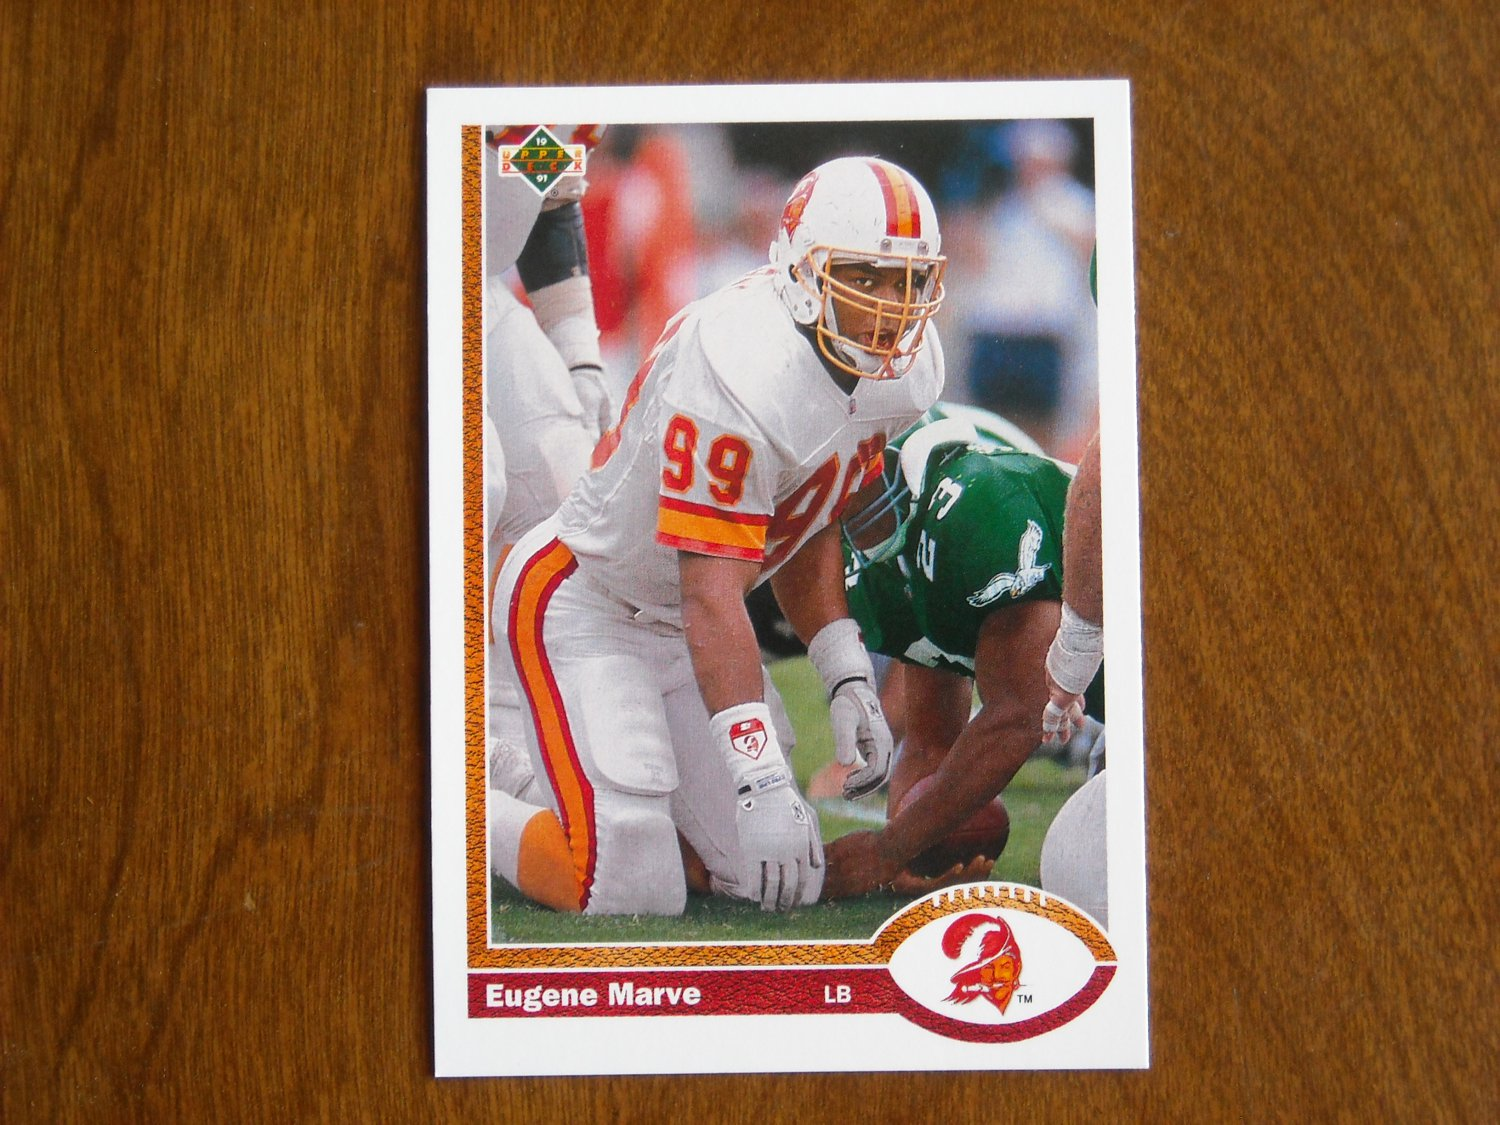 Eugene Marve Tampa Bay Buccaneers Linebacker Card No 508 - 1991 Upper Deck Football Card